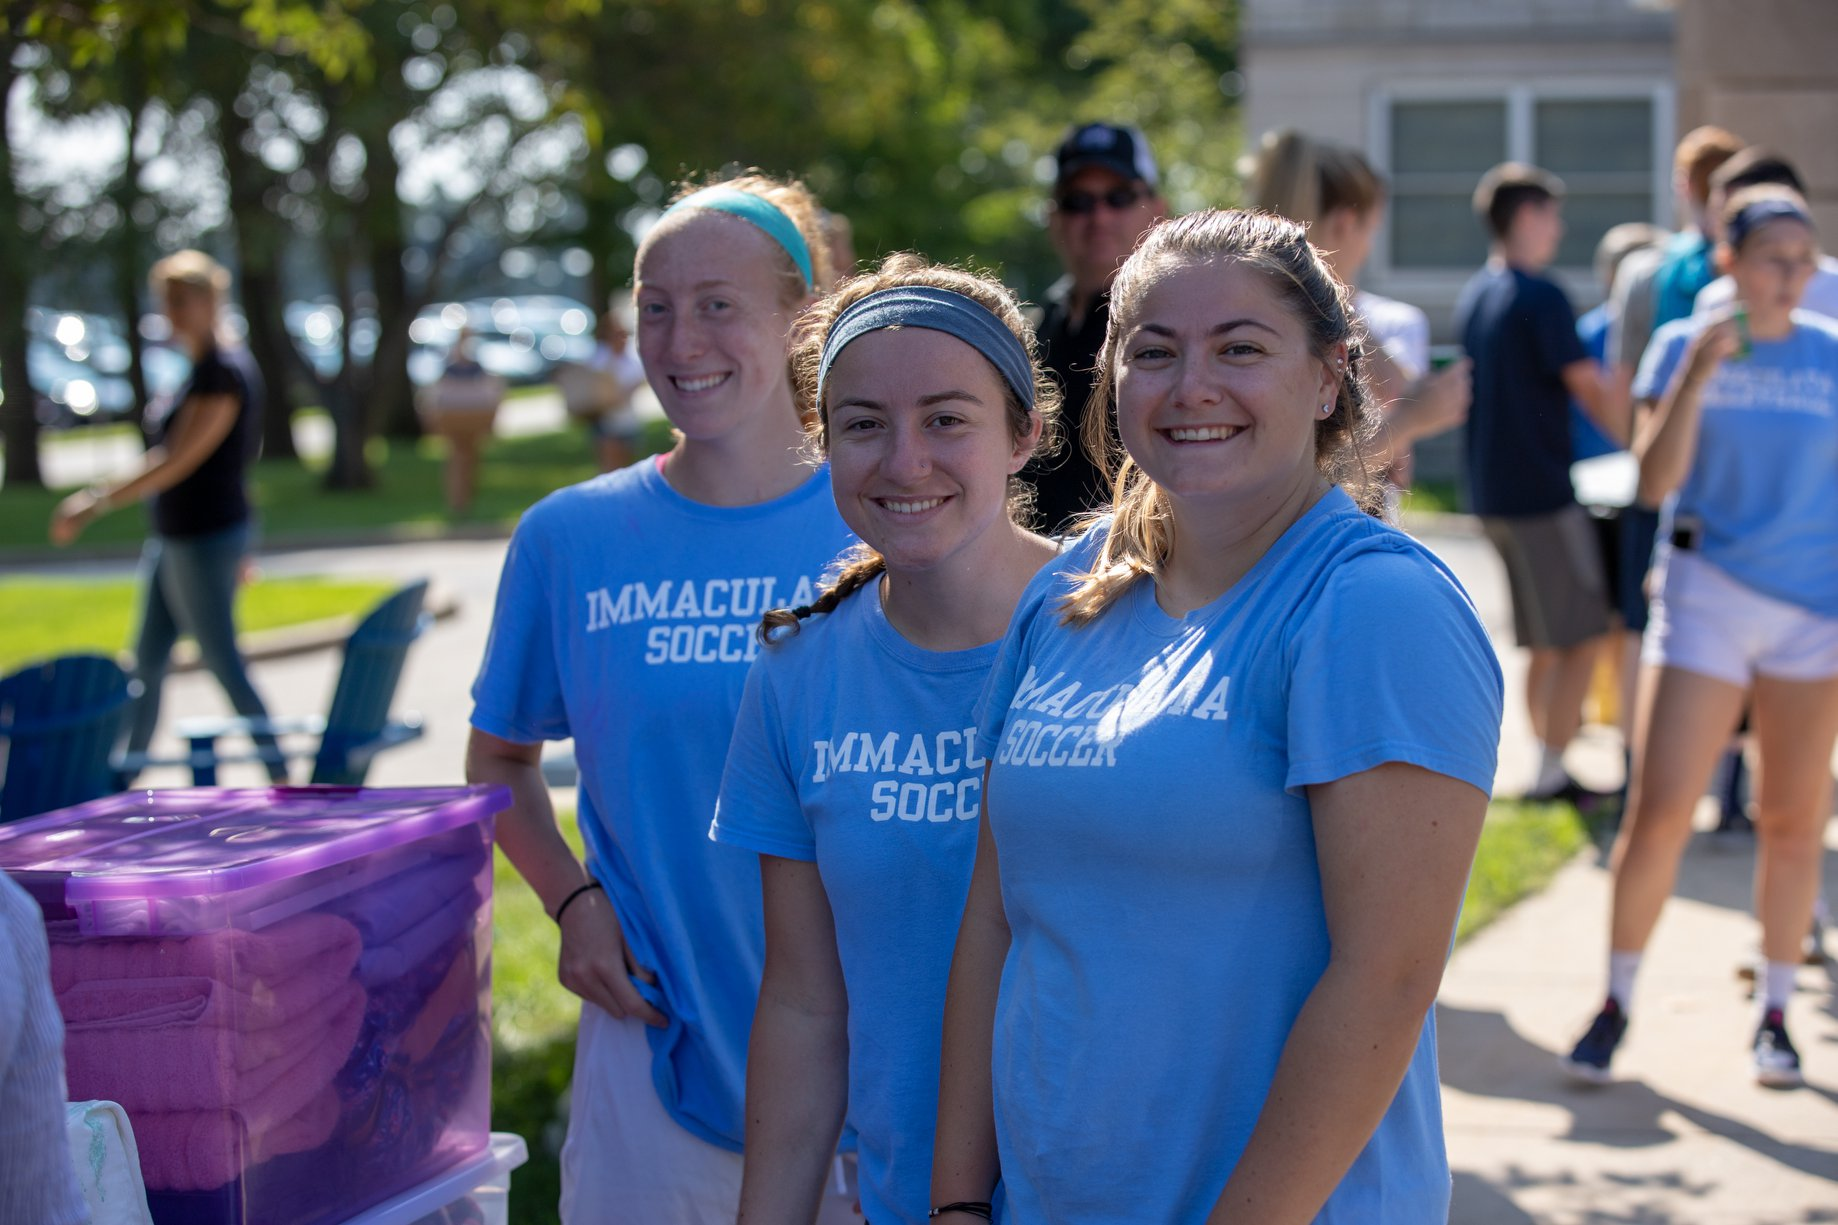 Immaculata University to Guarantee Admission for Graduates of Archdiocesan High Schools